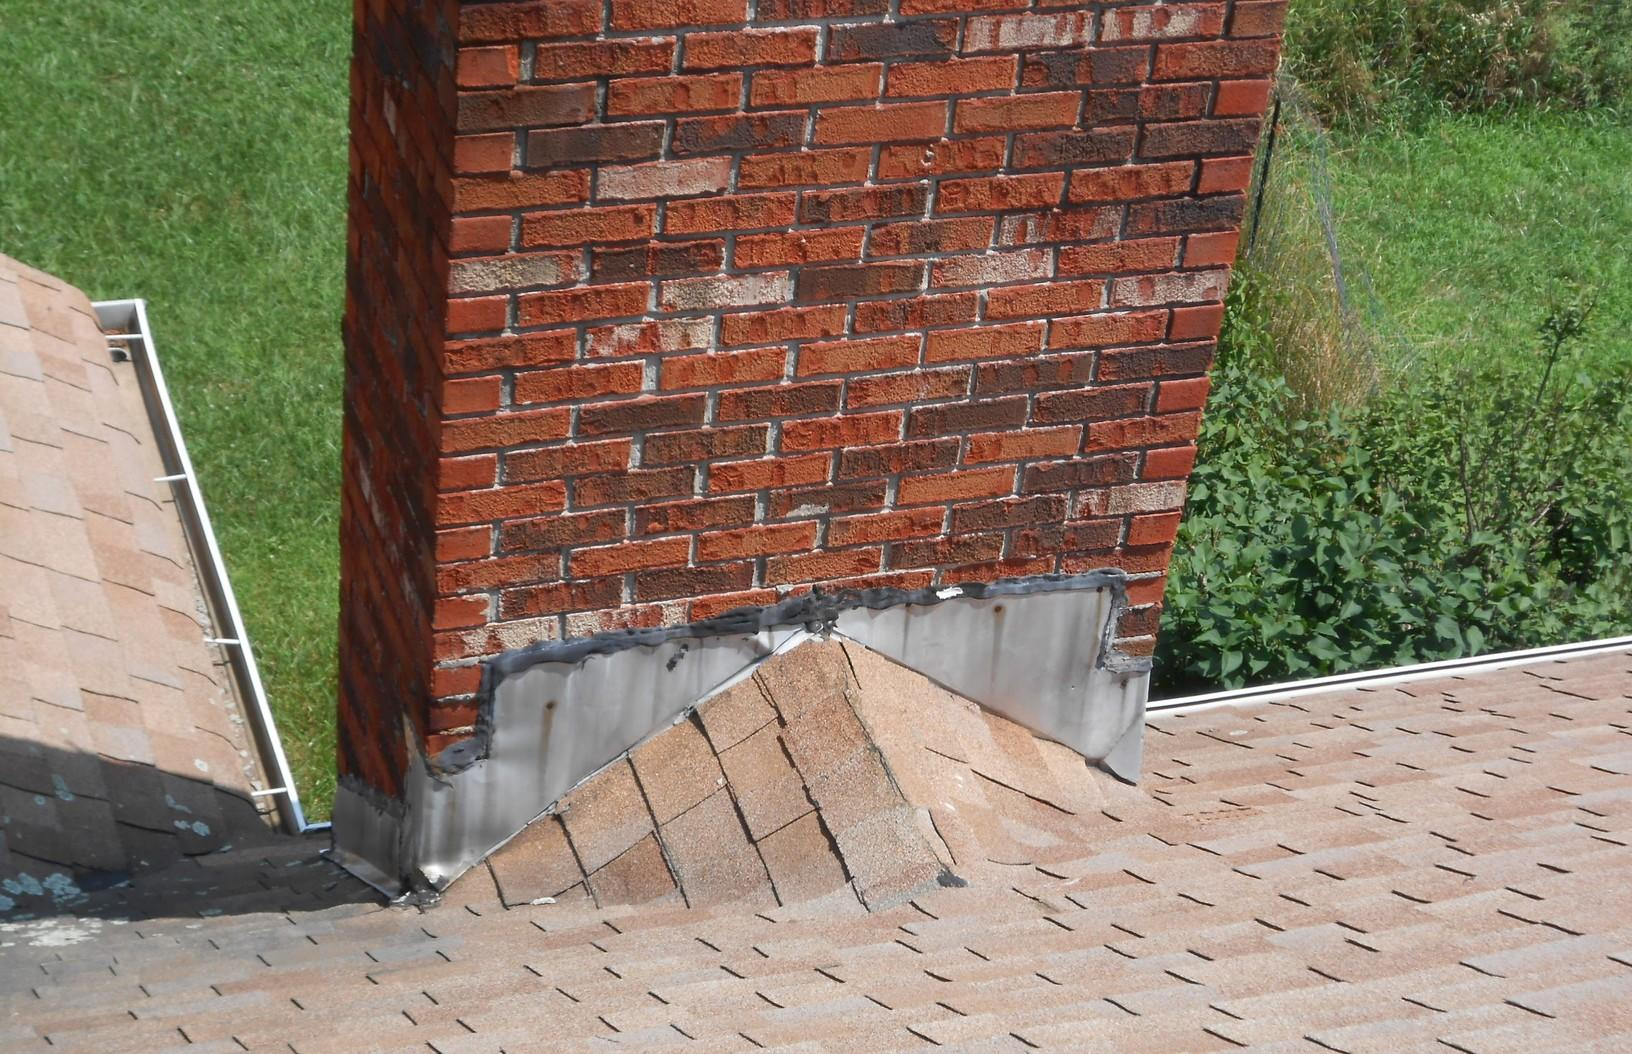 Asphalt Shingles and Chimney Flashing Replacement in Blairstown, NJ